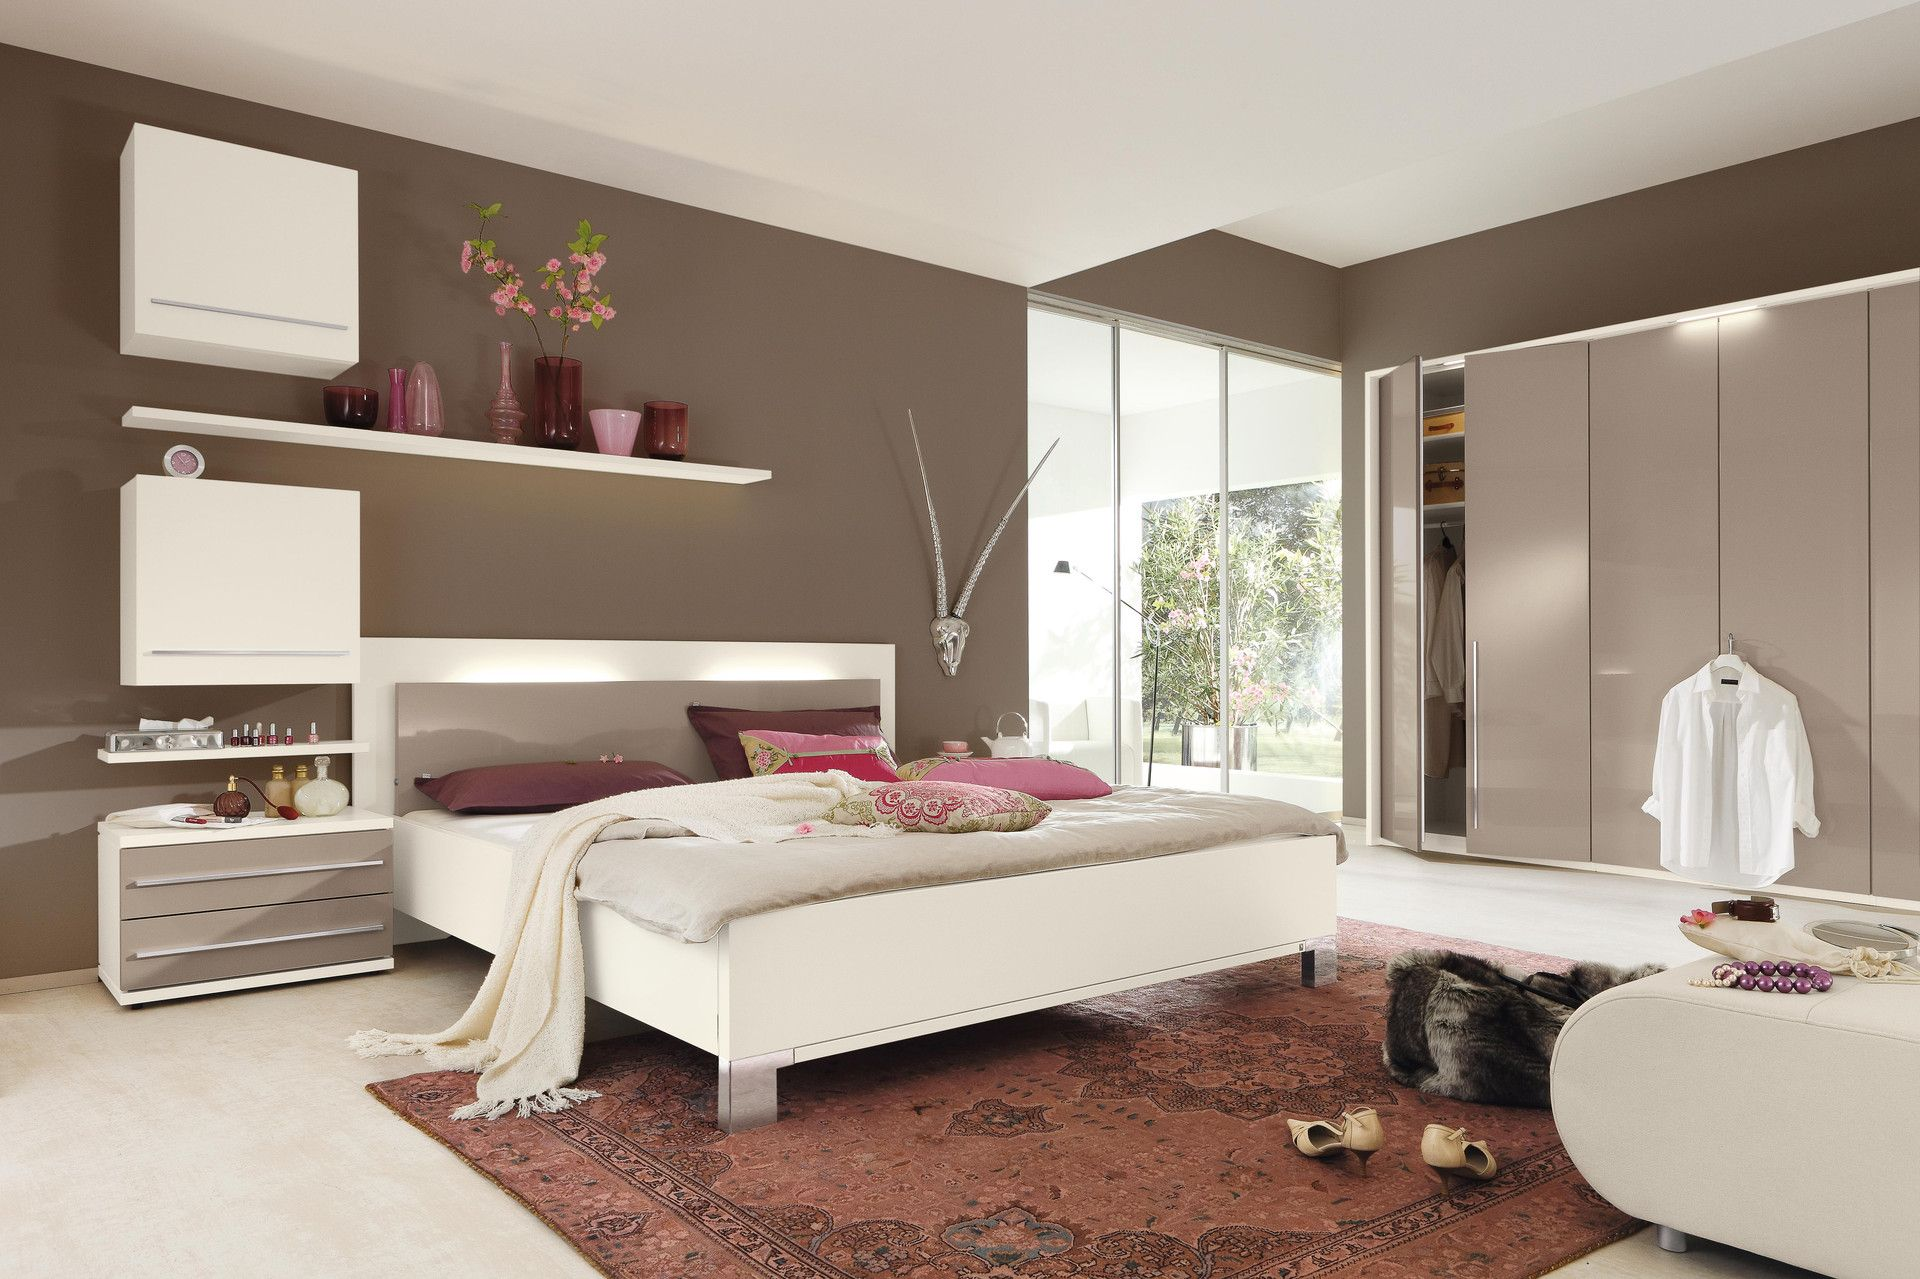 musterring aterno schlafzimmer interessante. Black Bedroom Furniture Sets. Home Design Ideas